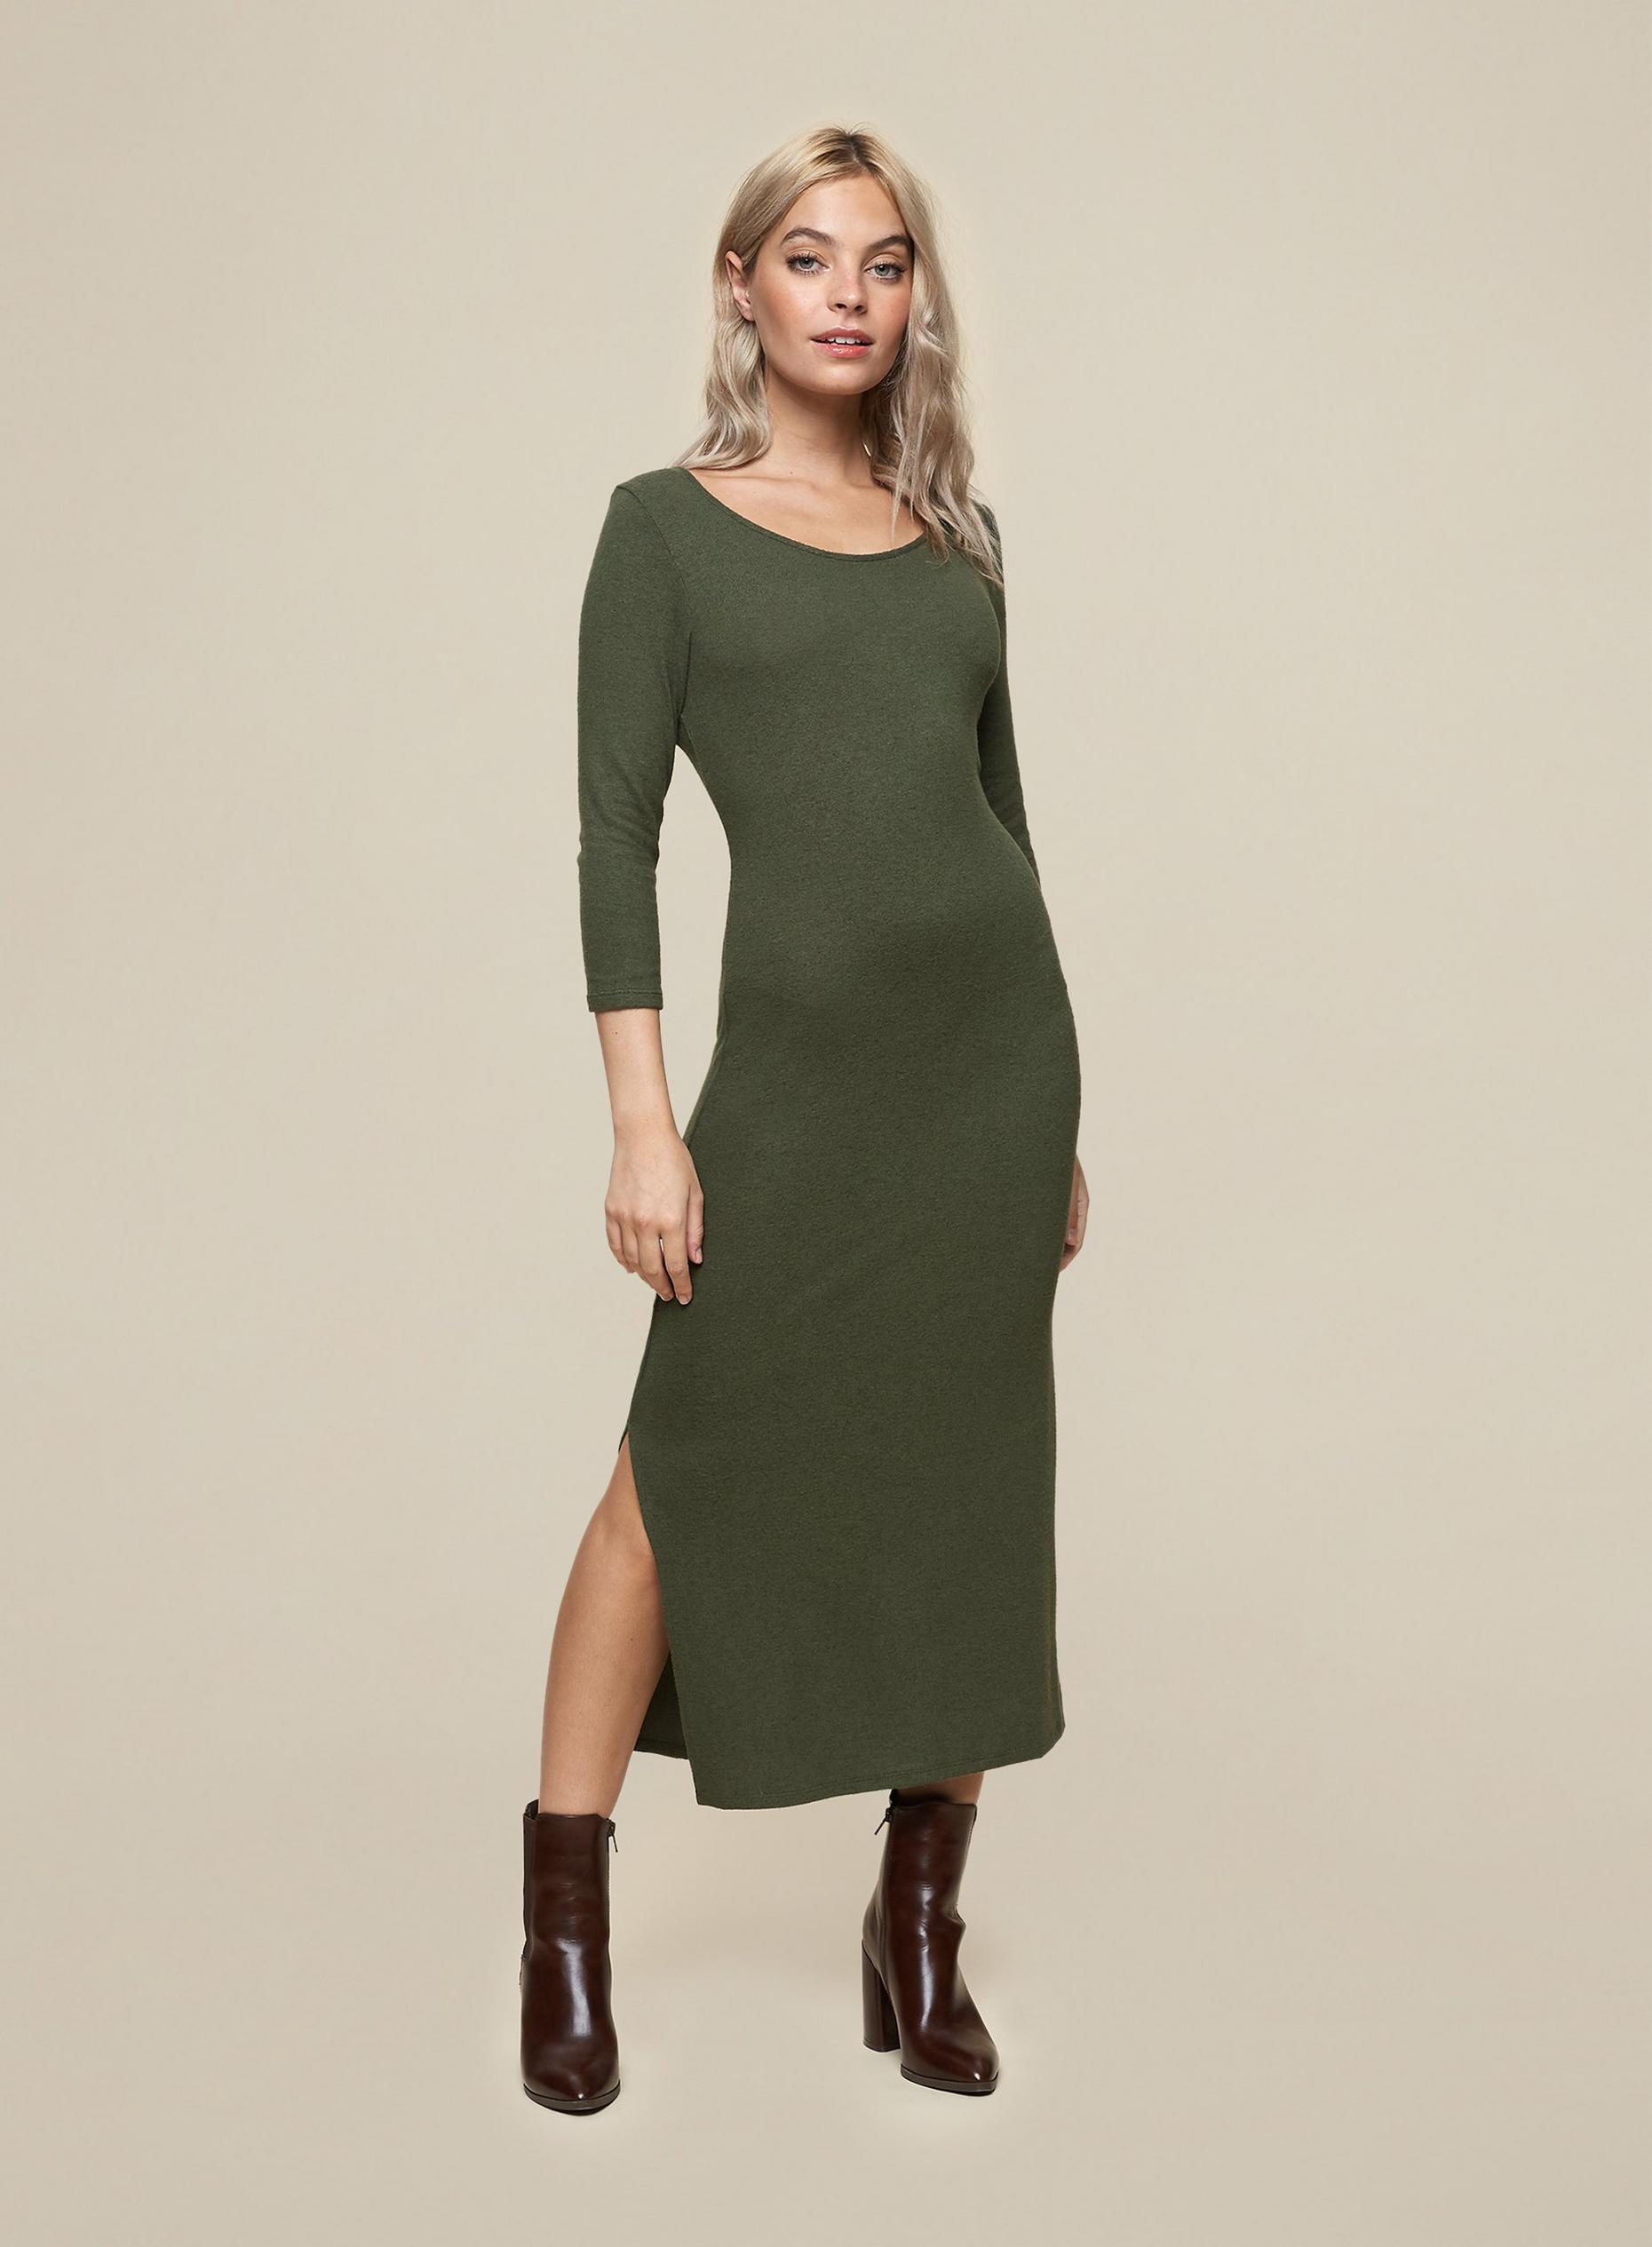 DP Petite Khaki 3/4 Sleeve Midi Dress